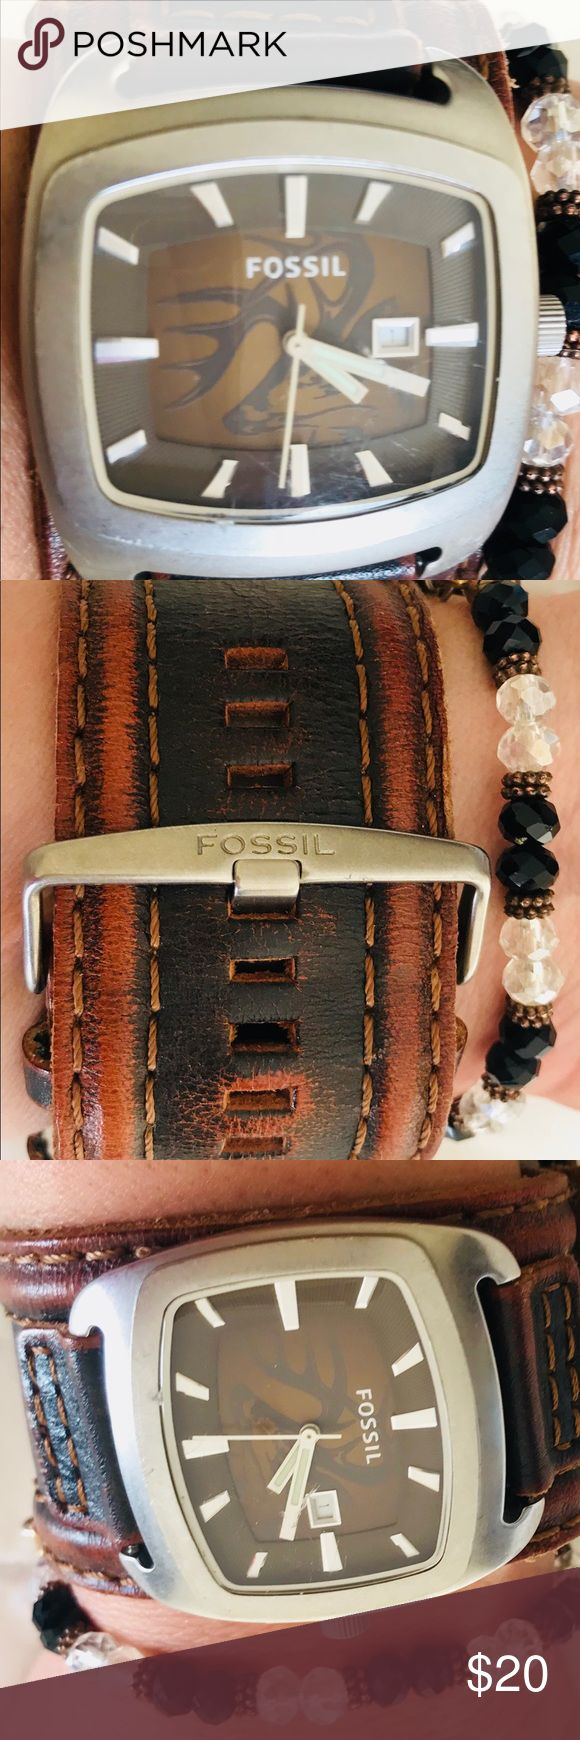 FOSSIL WATCH PRE LOVED NEEDS BATTERY FOSSIL WATCH PRE LOVED NEEDS BATTERY FOSSIL Accessories Watches